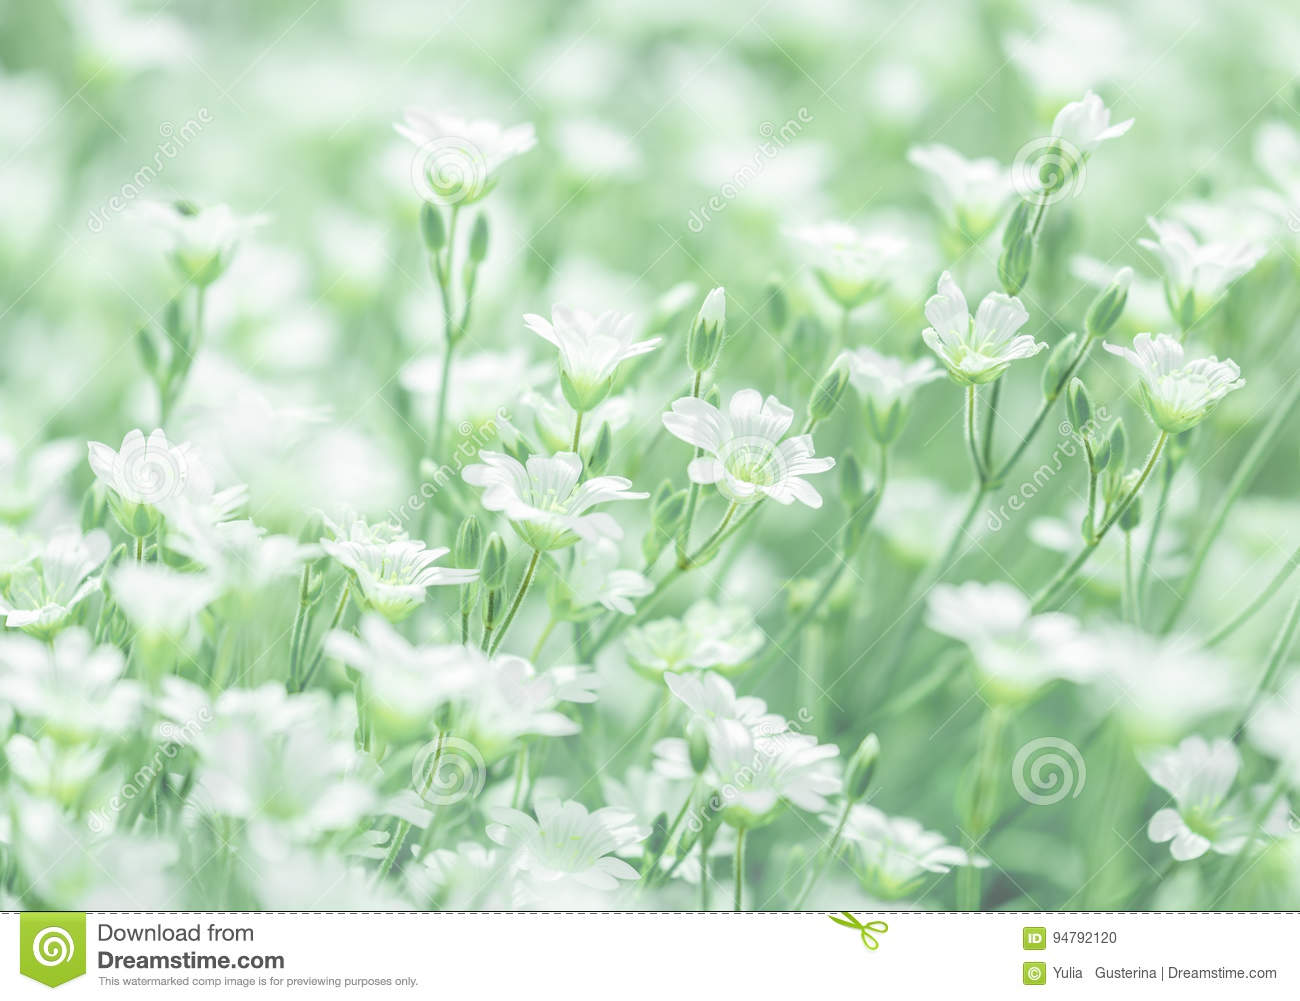 Delicate White Flowers Of Cerastium On A Delicate Green Background